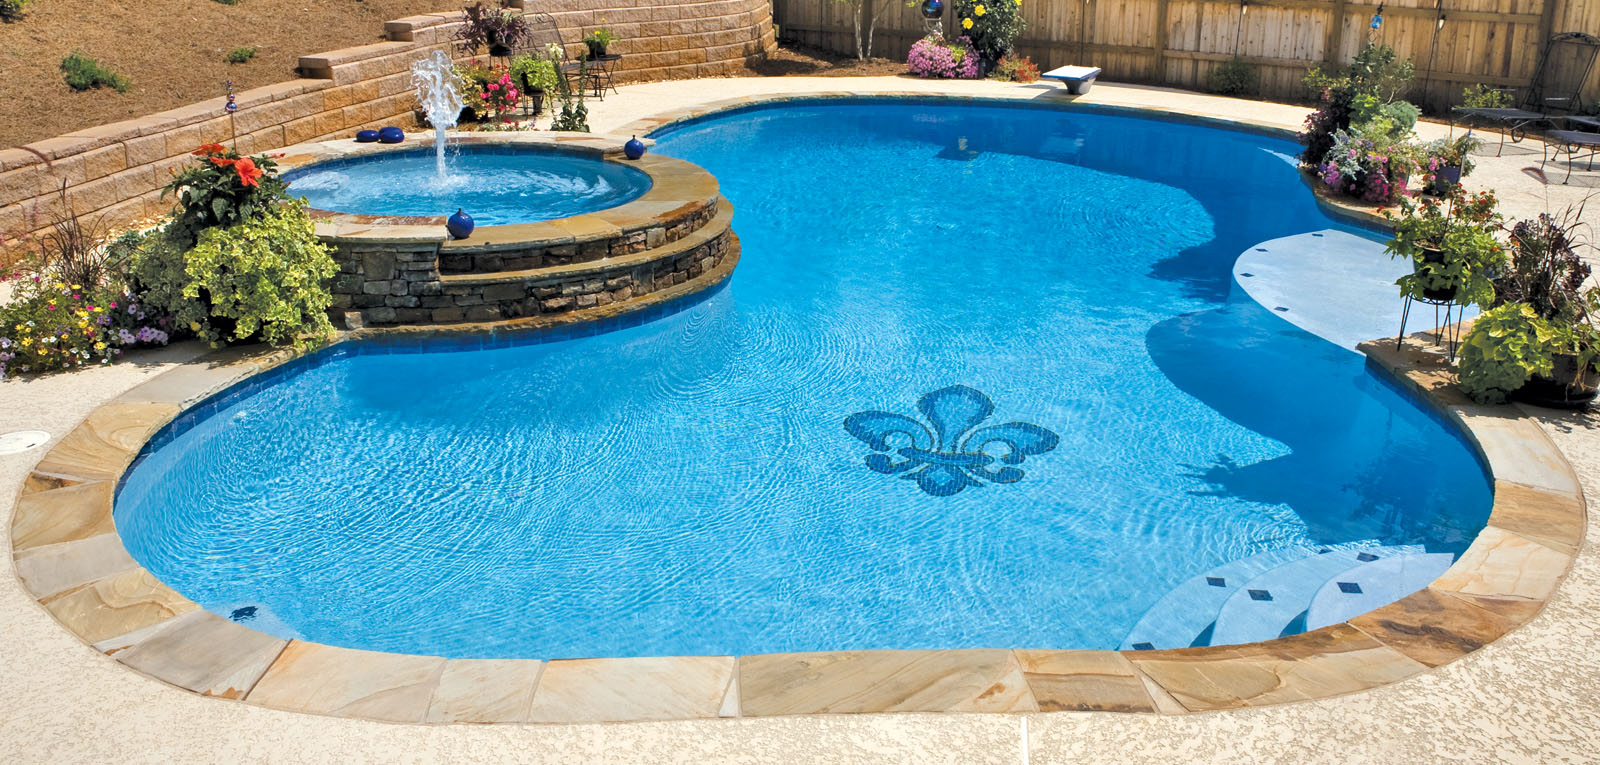 Pool mosaics blue haven custom swimming pool and spa for Affordable pools and supplies